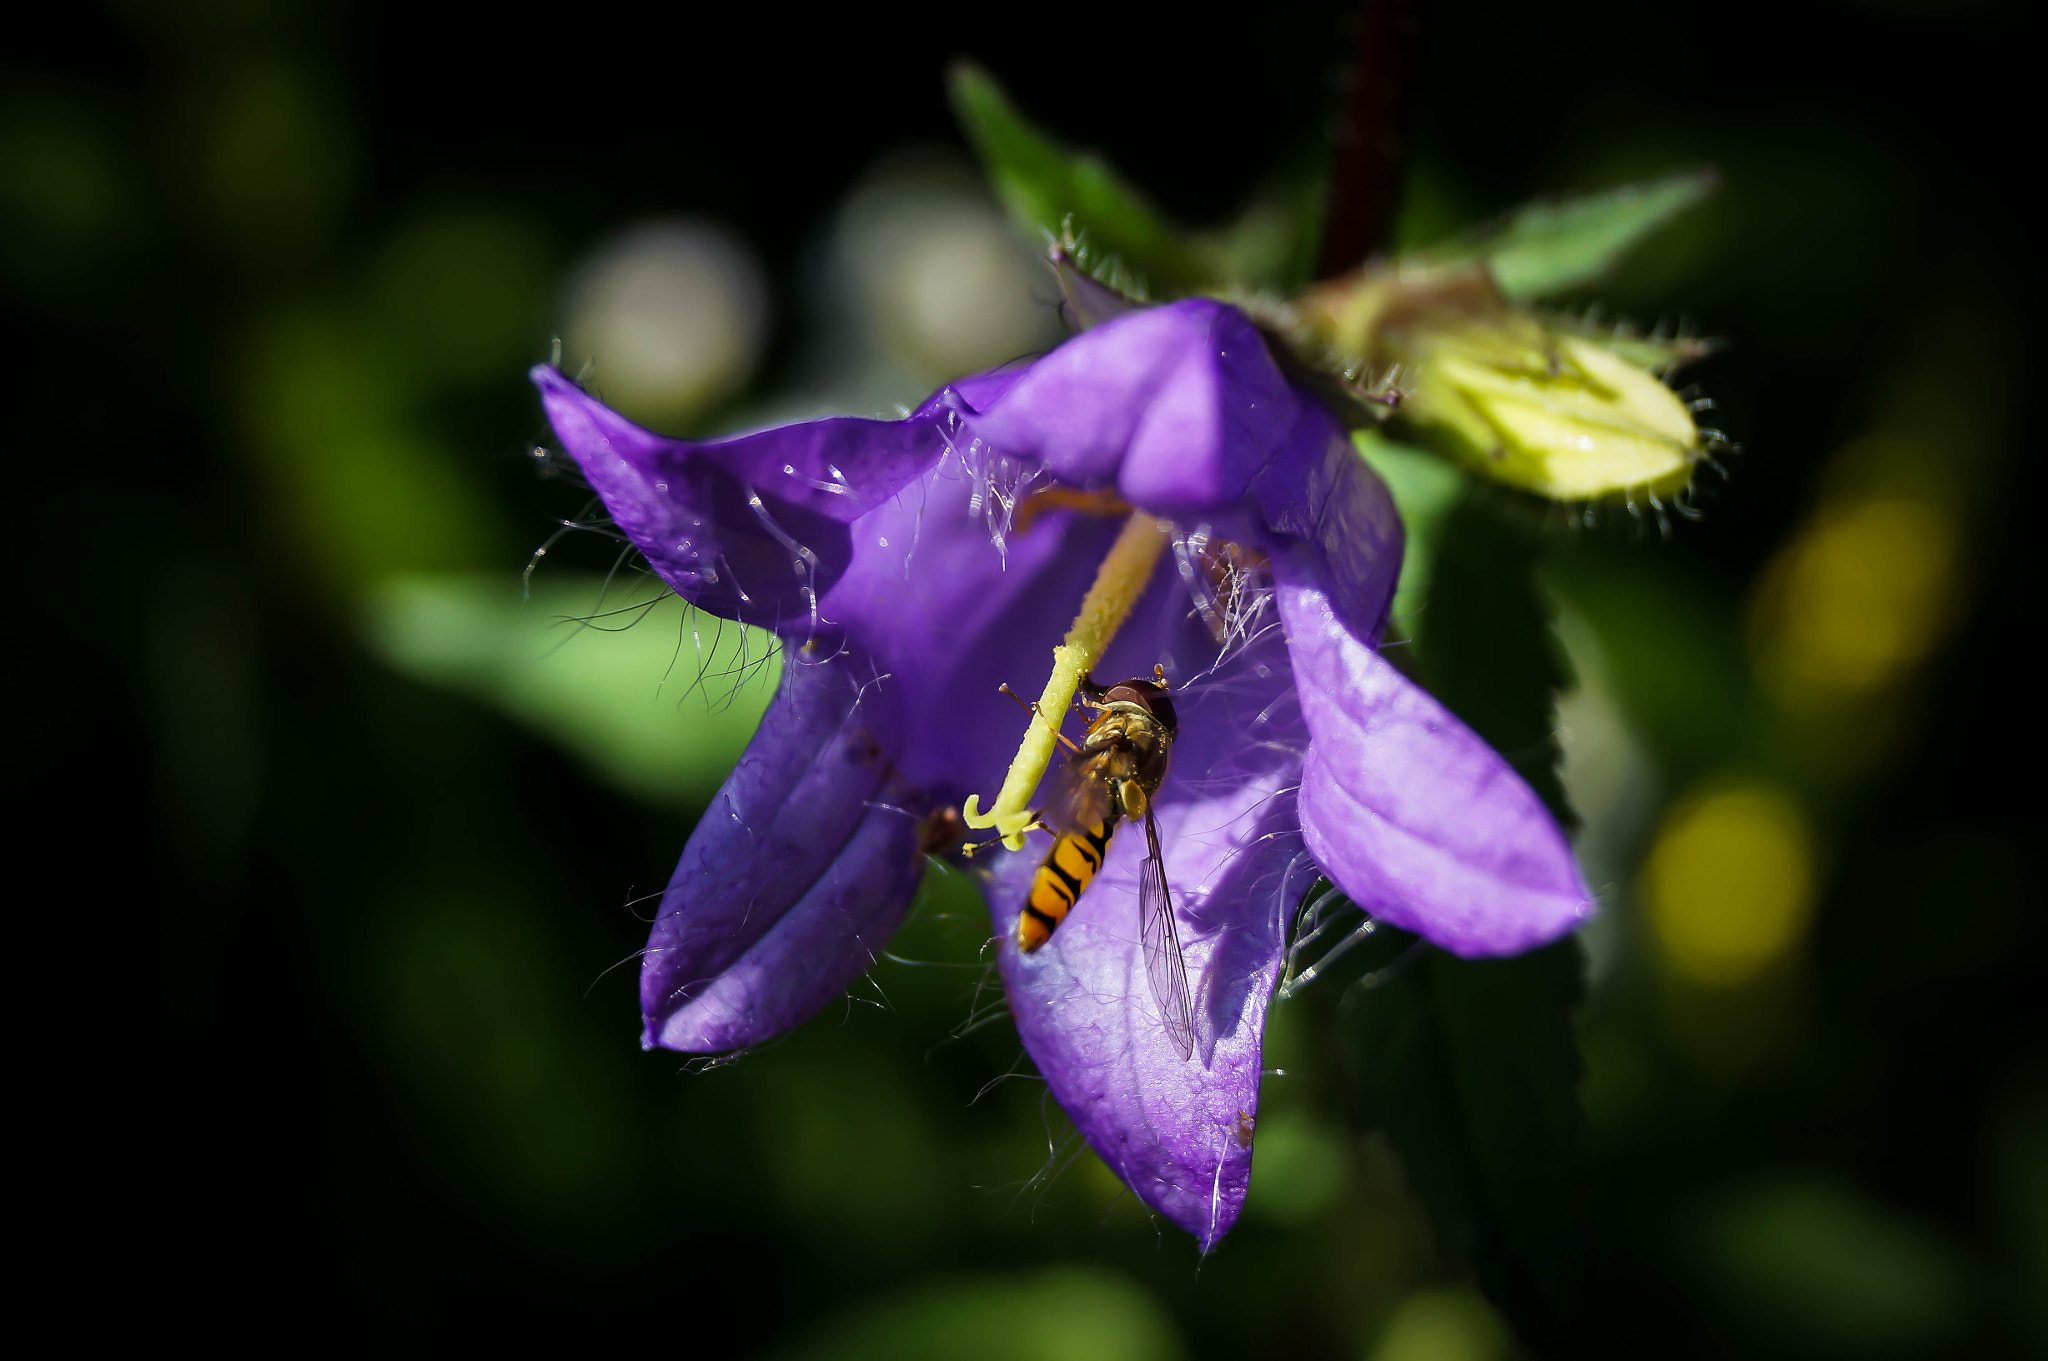 Photograph Flower and Bee by Ralf Bessoth on 500px